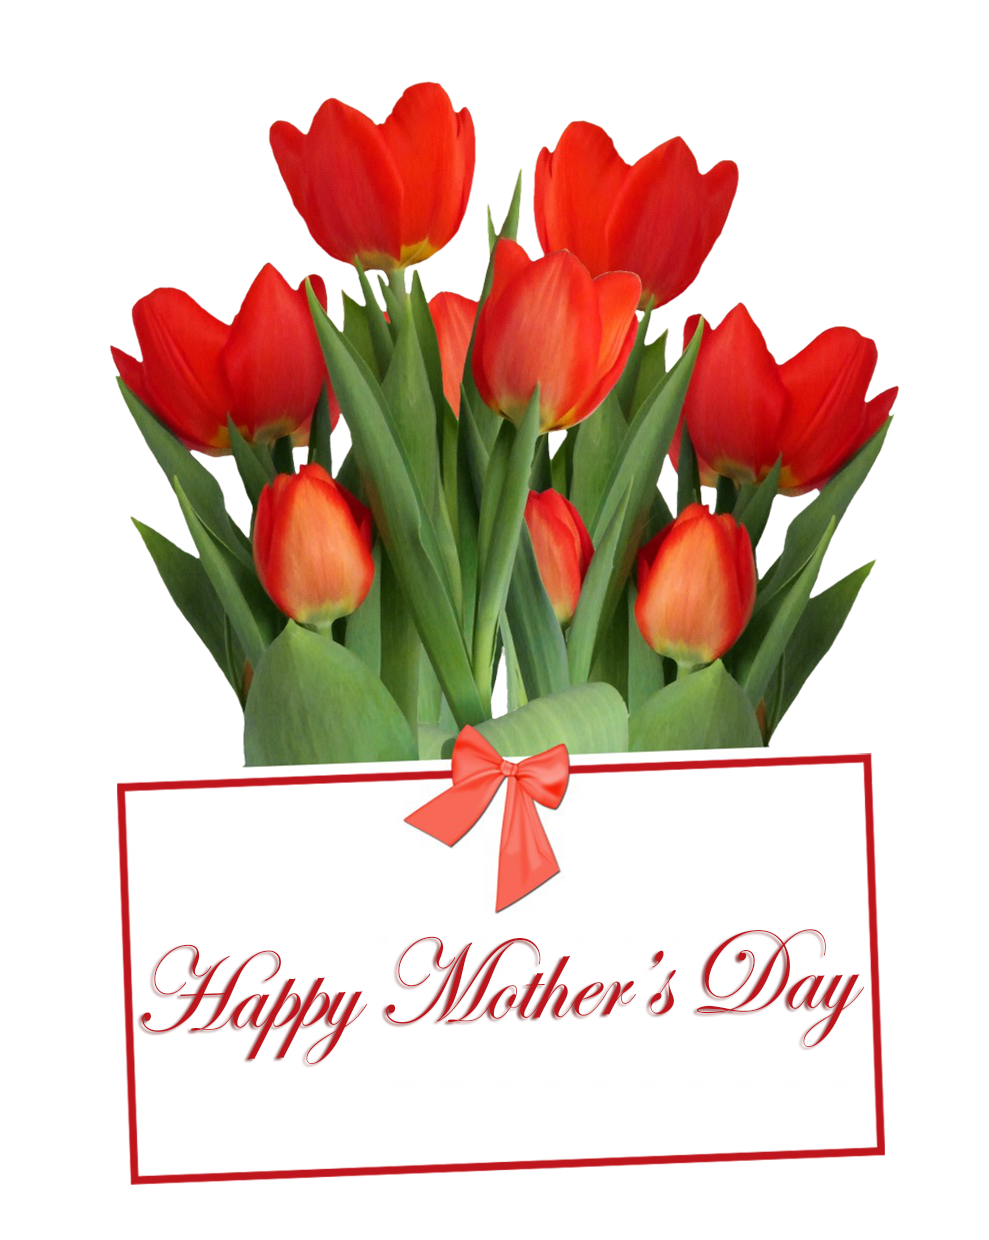 tulips with Mother's Day greeting card